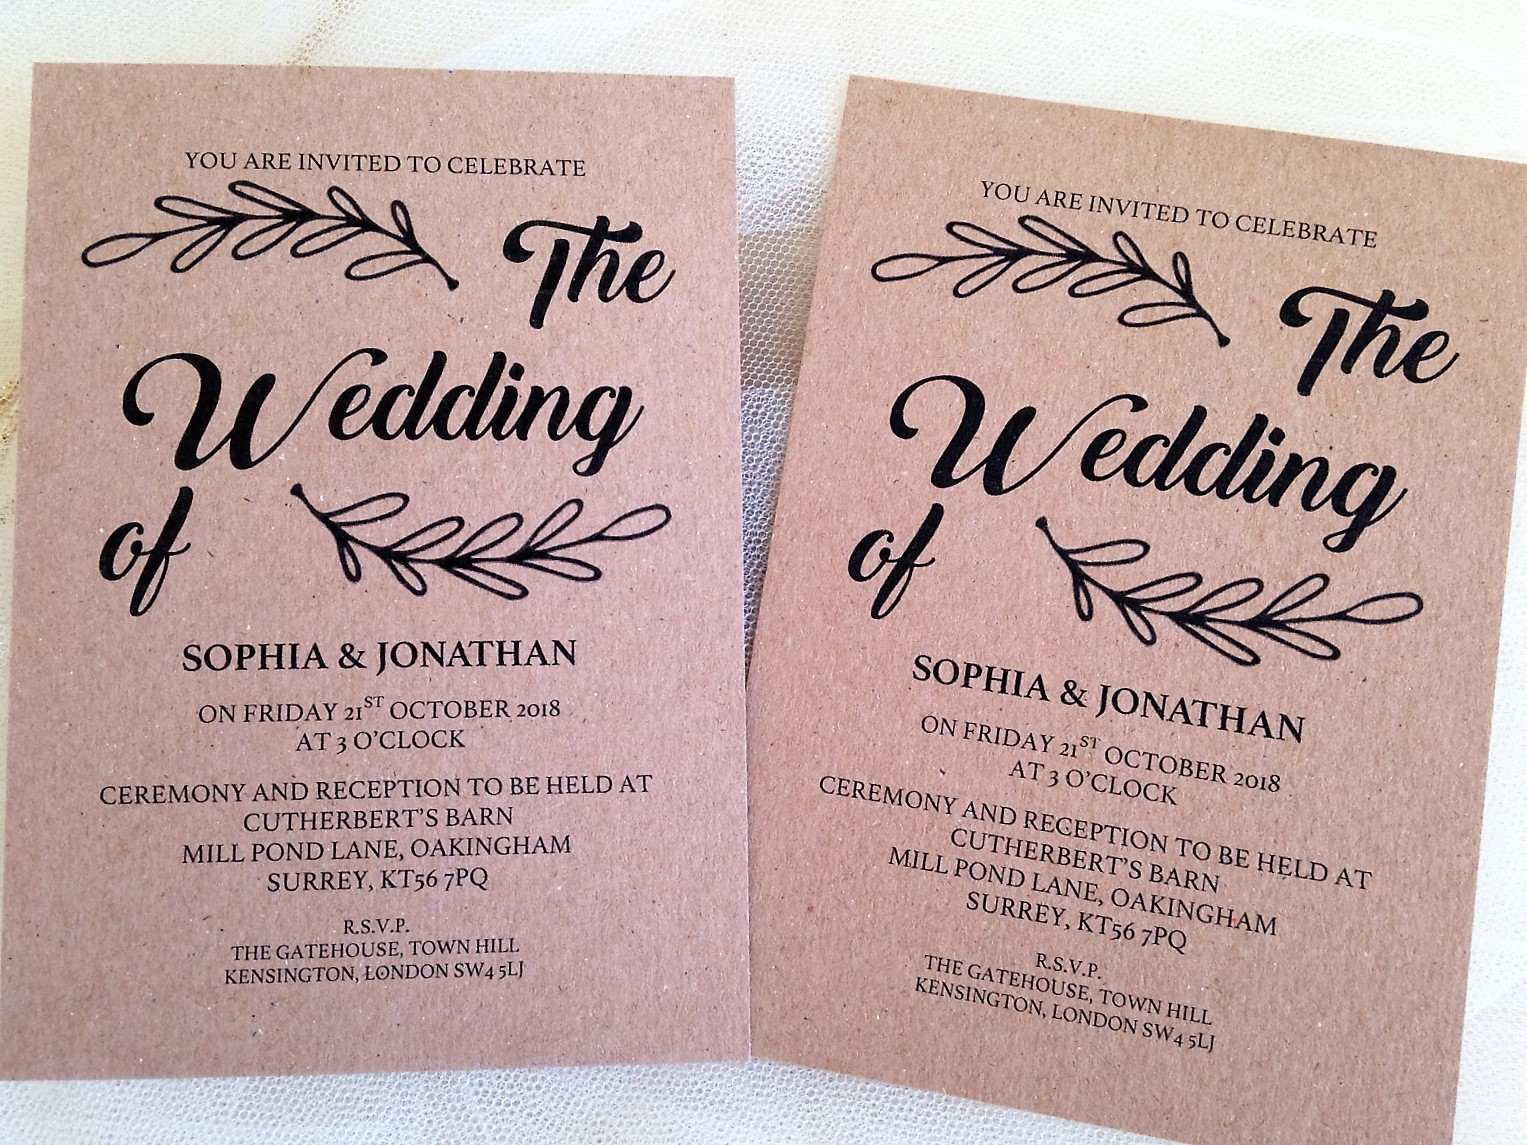 What Should Be Included In Wedding Invitation: Wedding Invitations Under £1